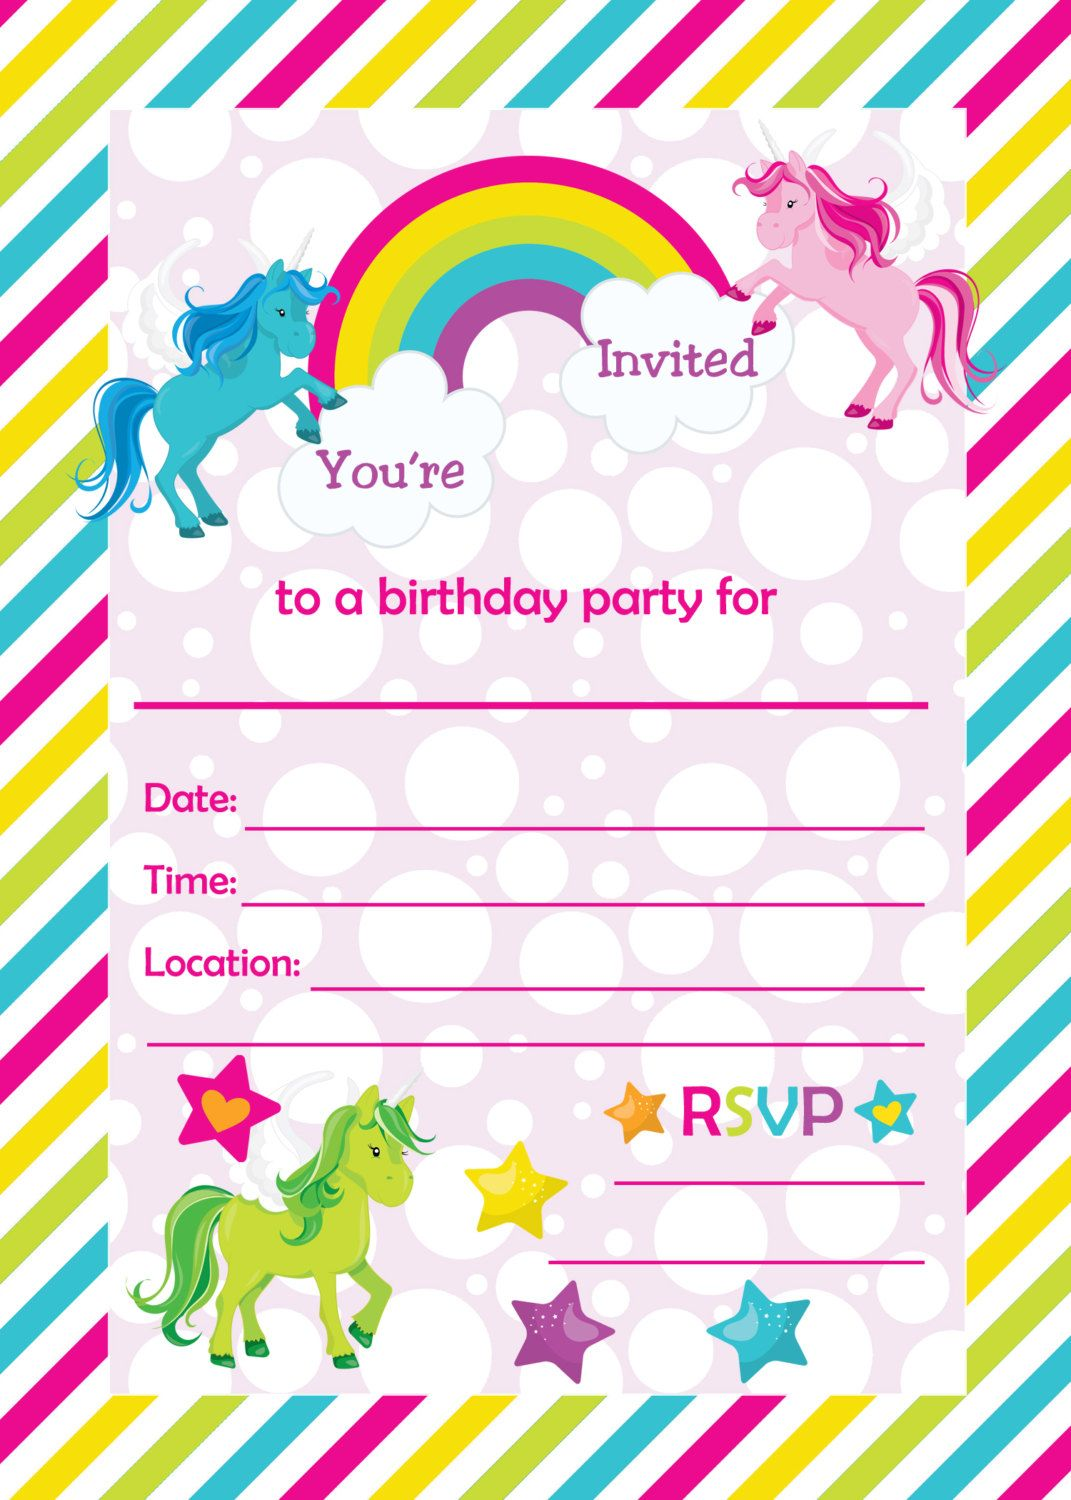 Fill in birthday party invitations printable rainbows and unicorns fill in birthday party invitations printable rainbows and unicorns invitations blank party invitation download 650 handmade holidays filmwisefo